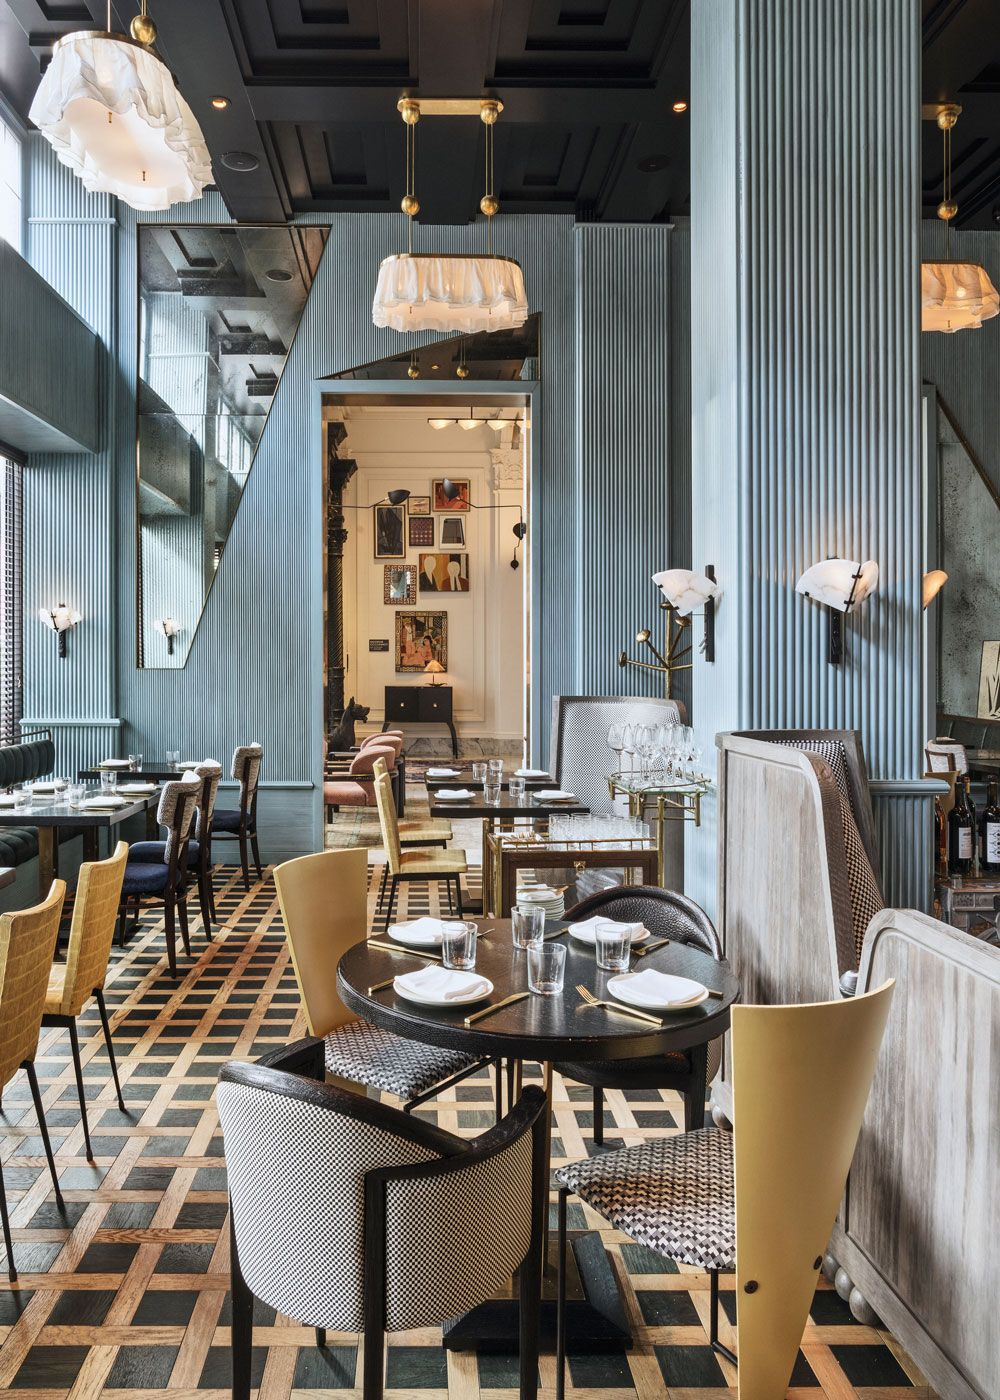 Pin by Rubia Tang on Inspiration i!i in 2019 | Restaurant ...